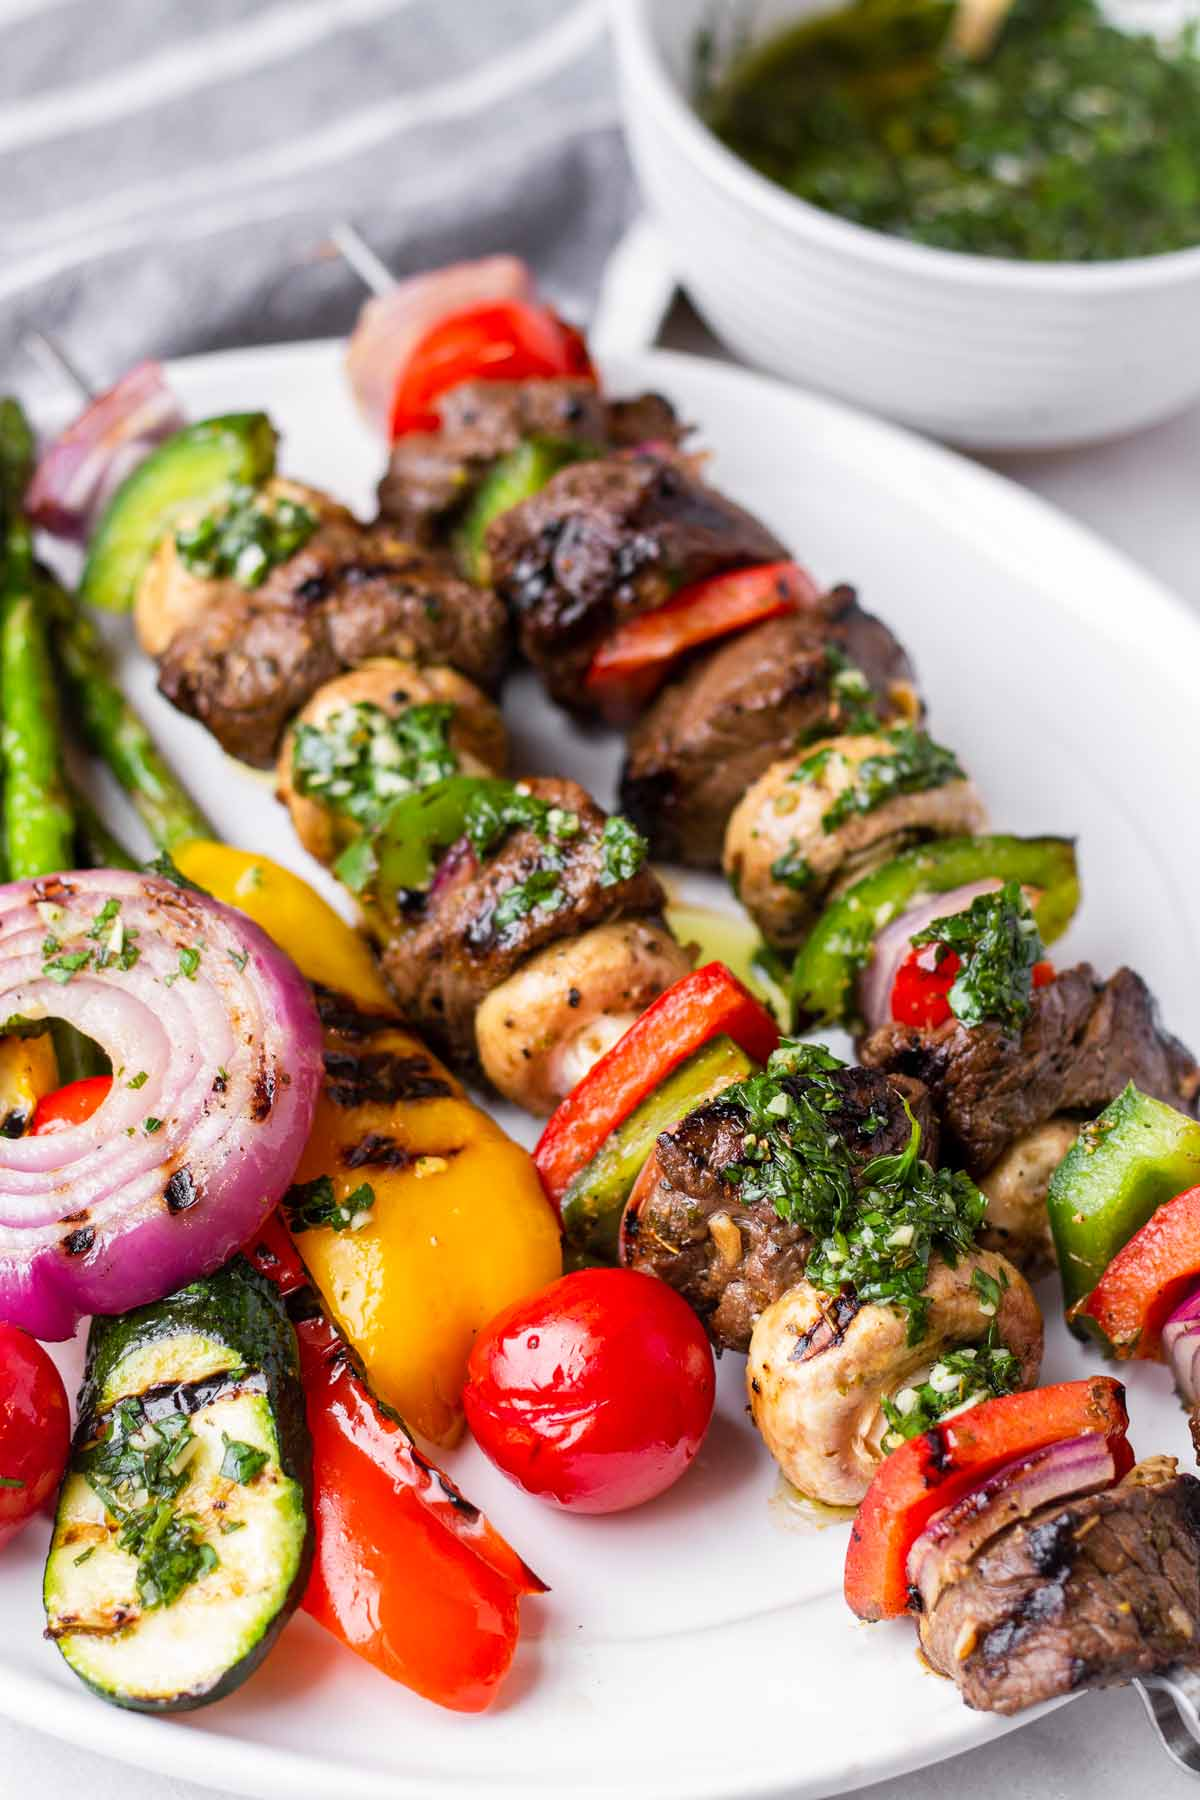 two steak and veggie skewers with grilled vegetables on the side